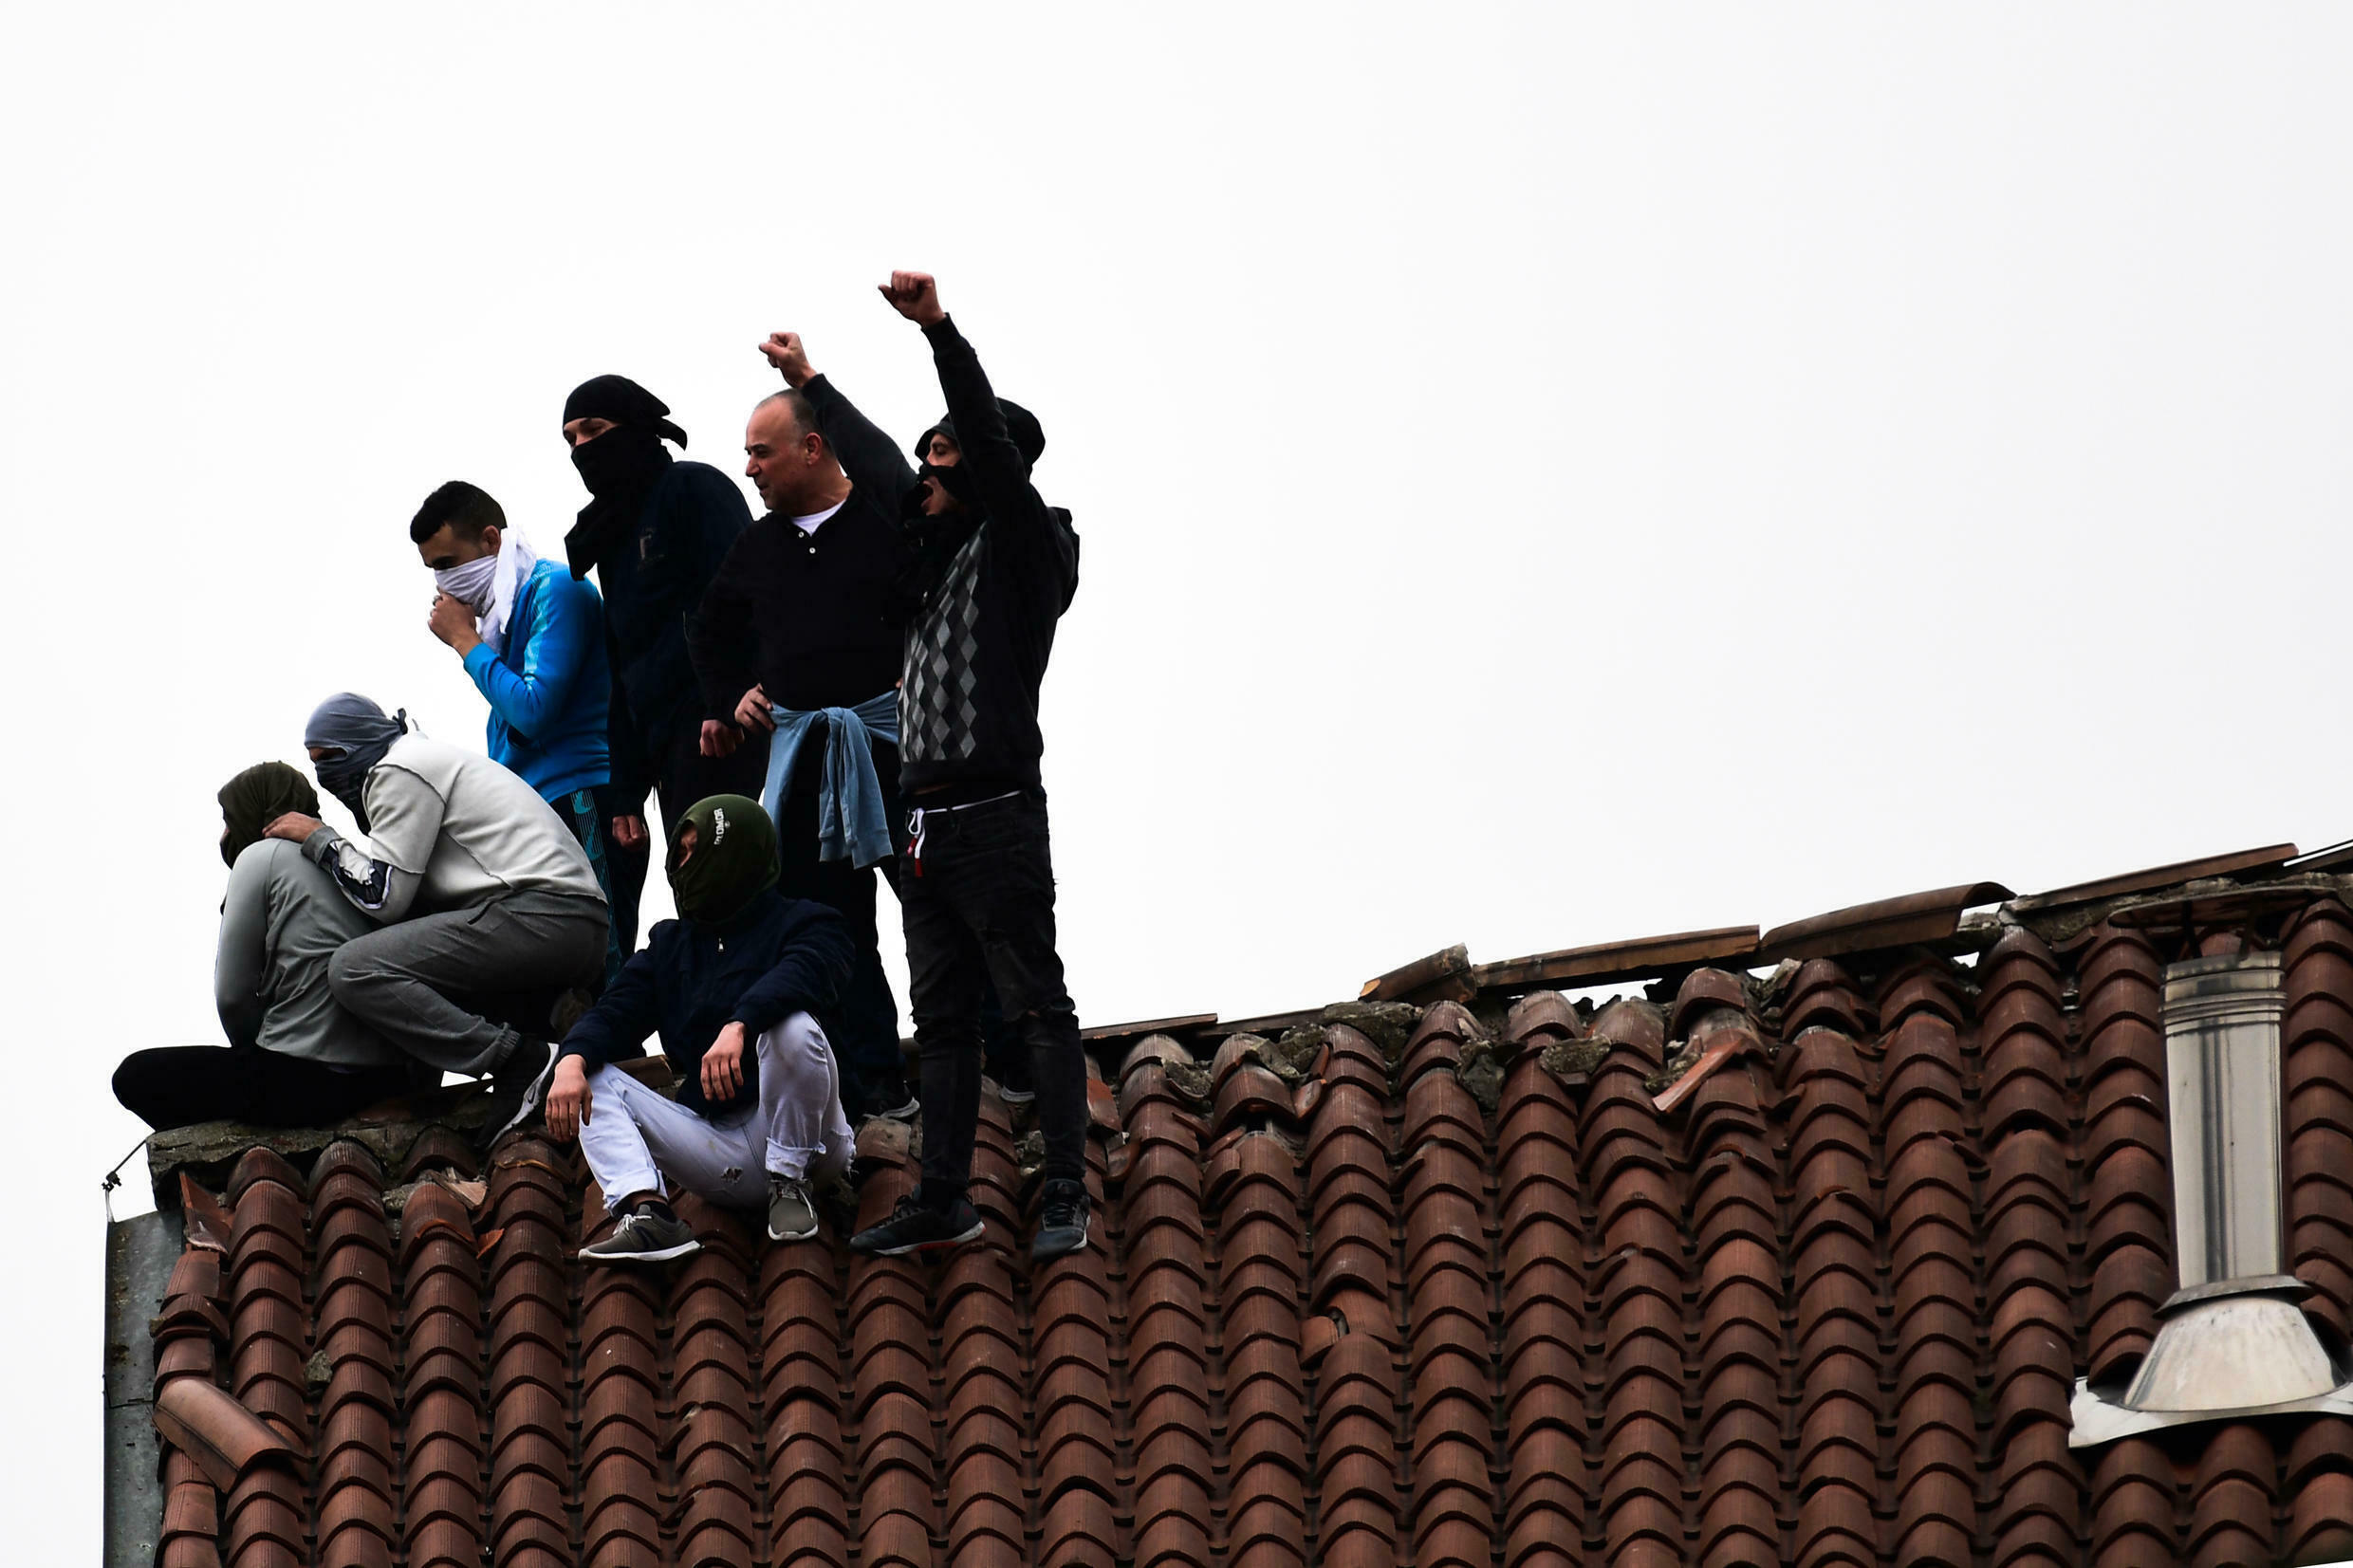 Prisoners rioted earlier this month in 27 institutions across Italy over coronavirus fears and the suspension of family visits